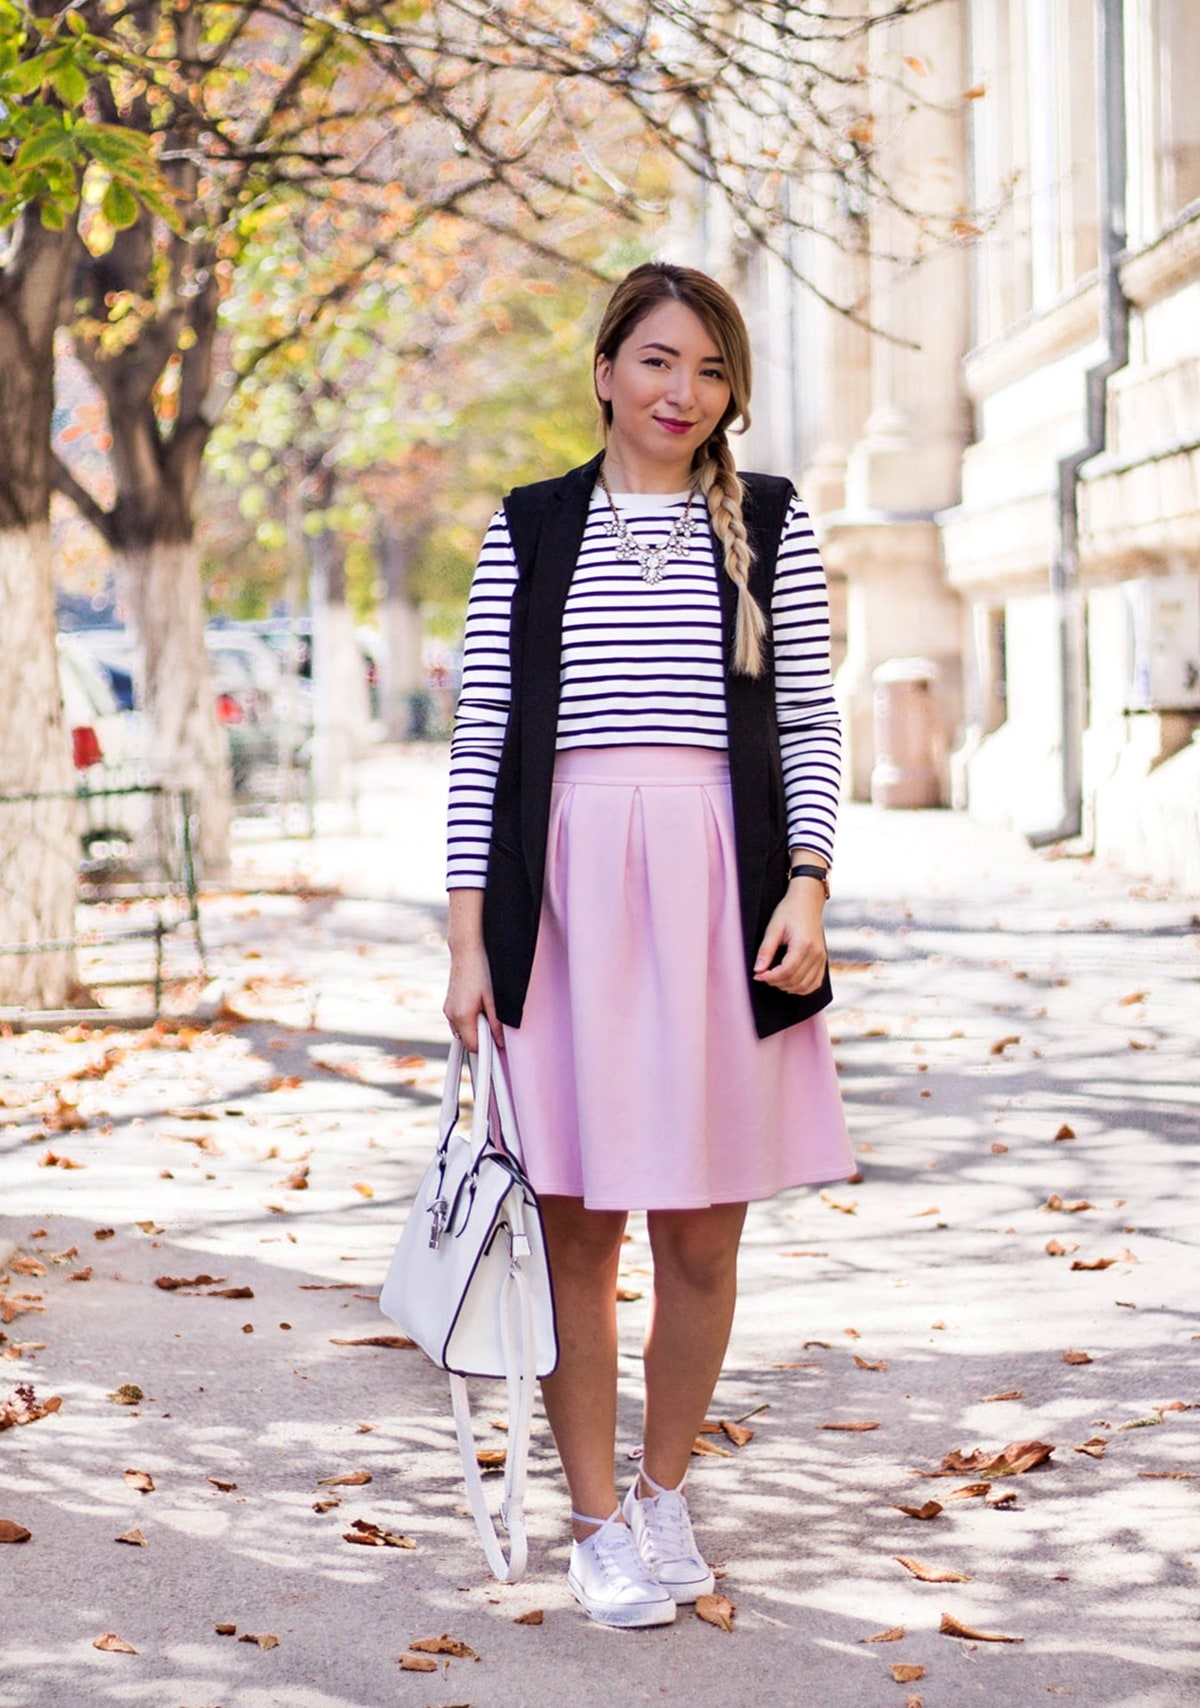 Bucharest street style, powdery pink pleated skirt, stripes basic black and white blouse, skirt with sneakers, white bag, autumn look, andreea ristea